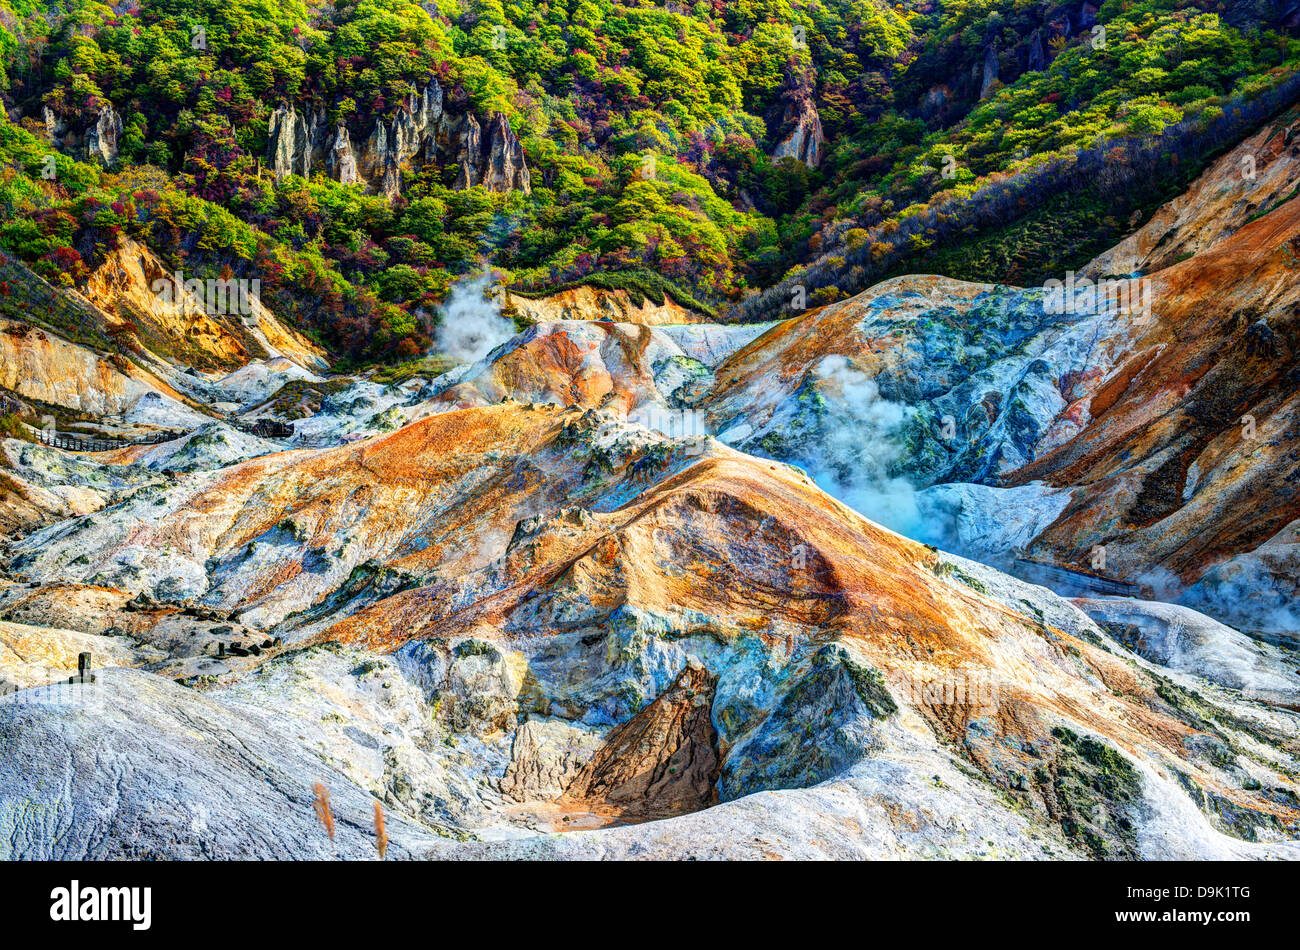 Hell Valley in Noboribetsu, Japan. - Stock Image